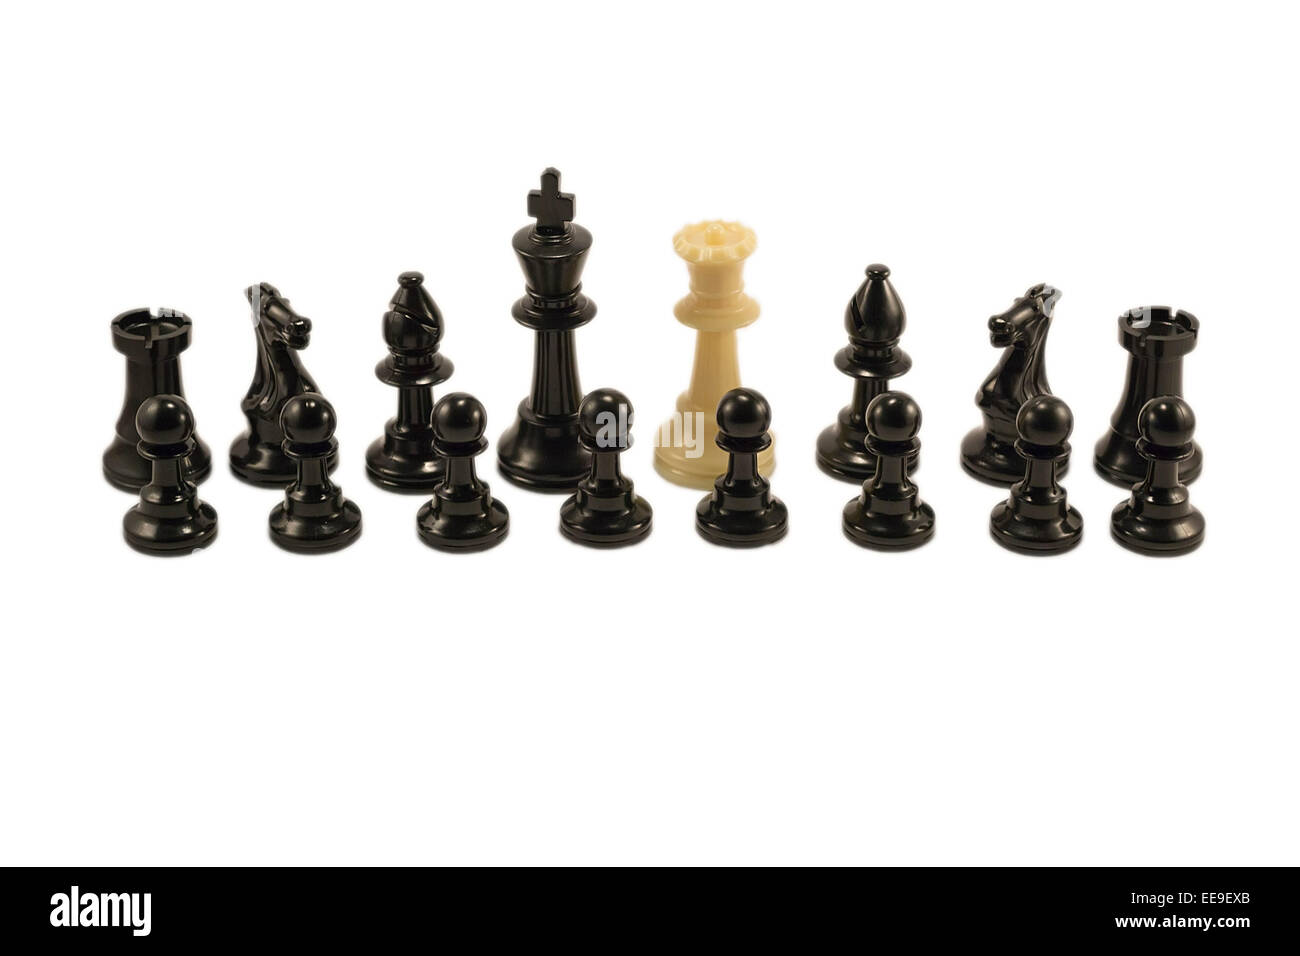 White queen standing alongside with the black chess pieces Stock Photo